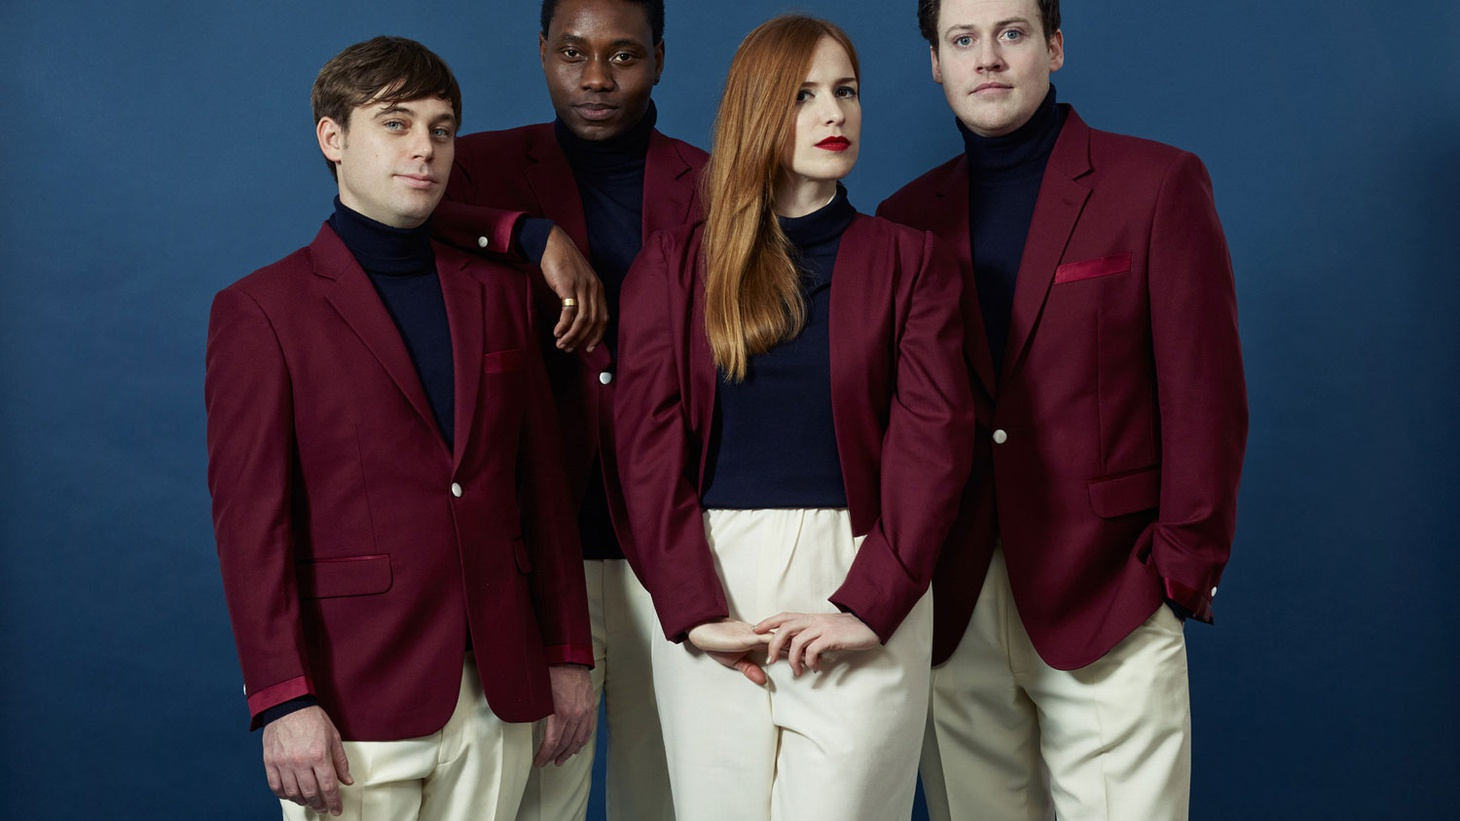 While touring behind Metronomy's last album, frontman Joseph Mount started writing the songs that would become their latest, Love Letters.